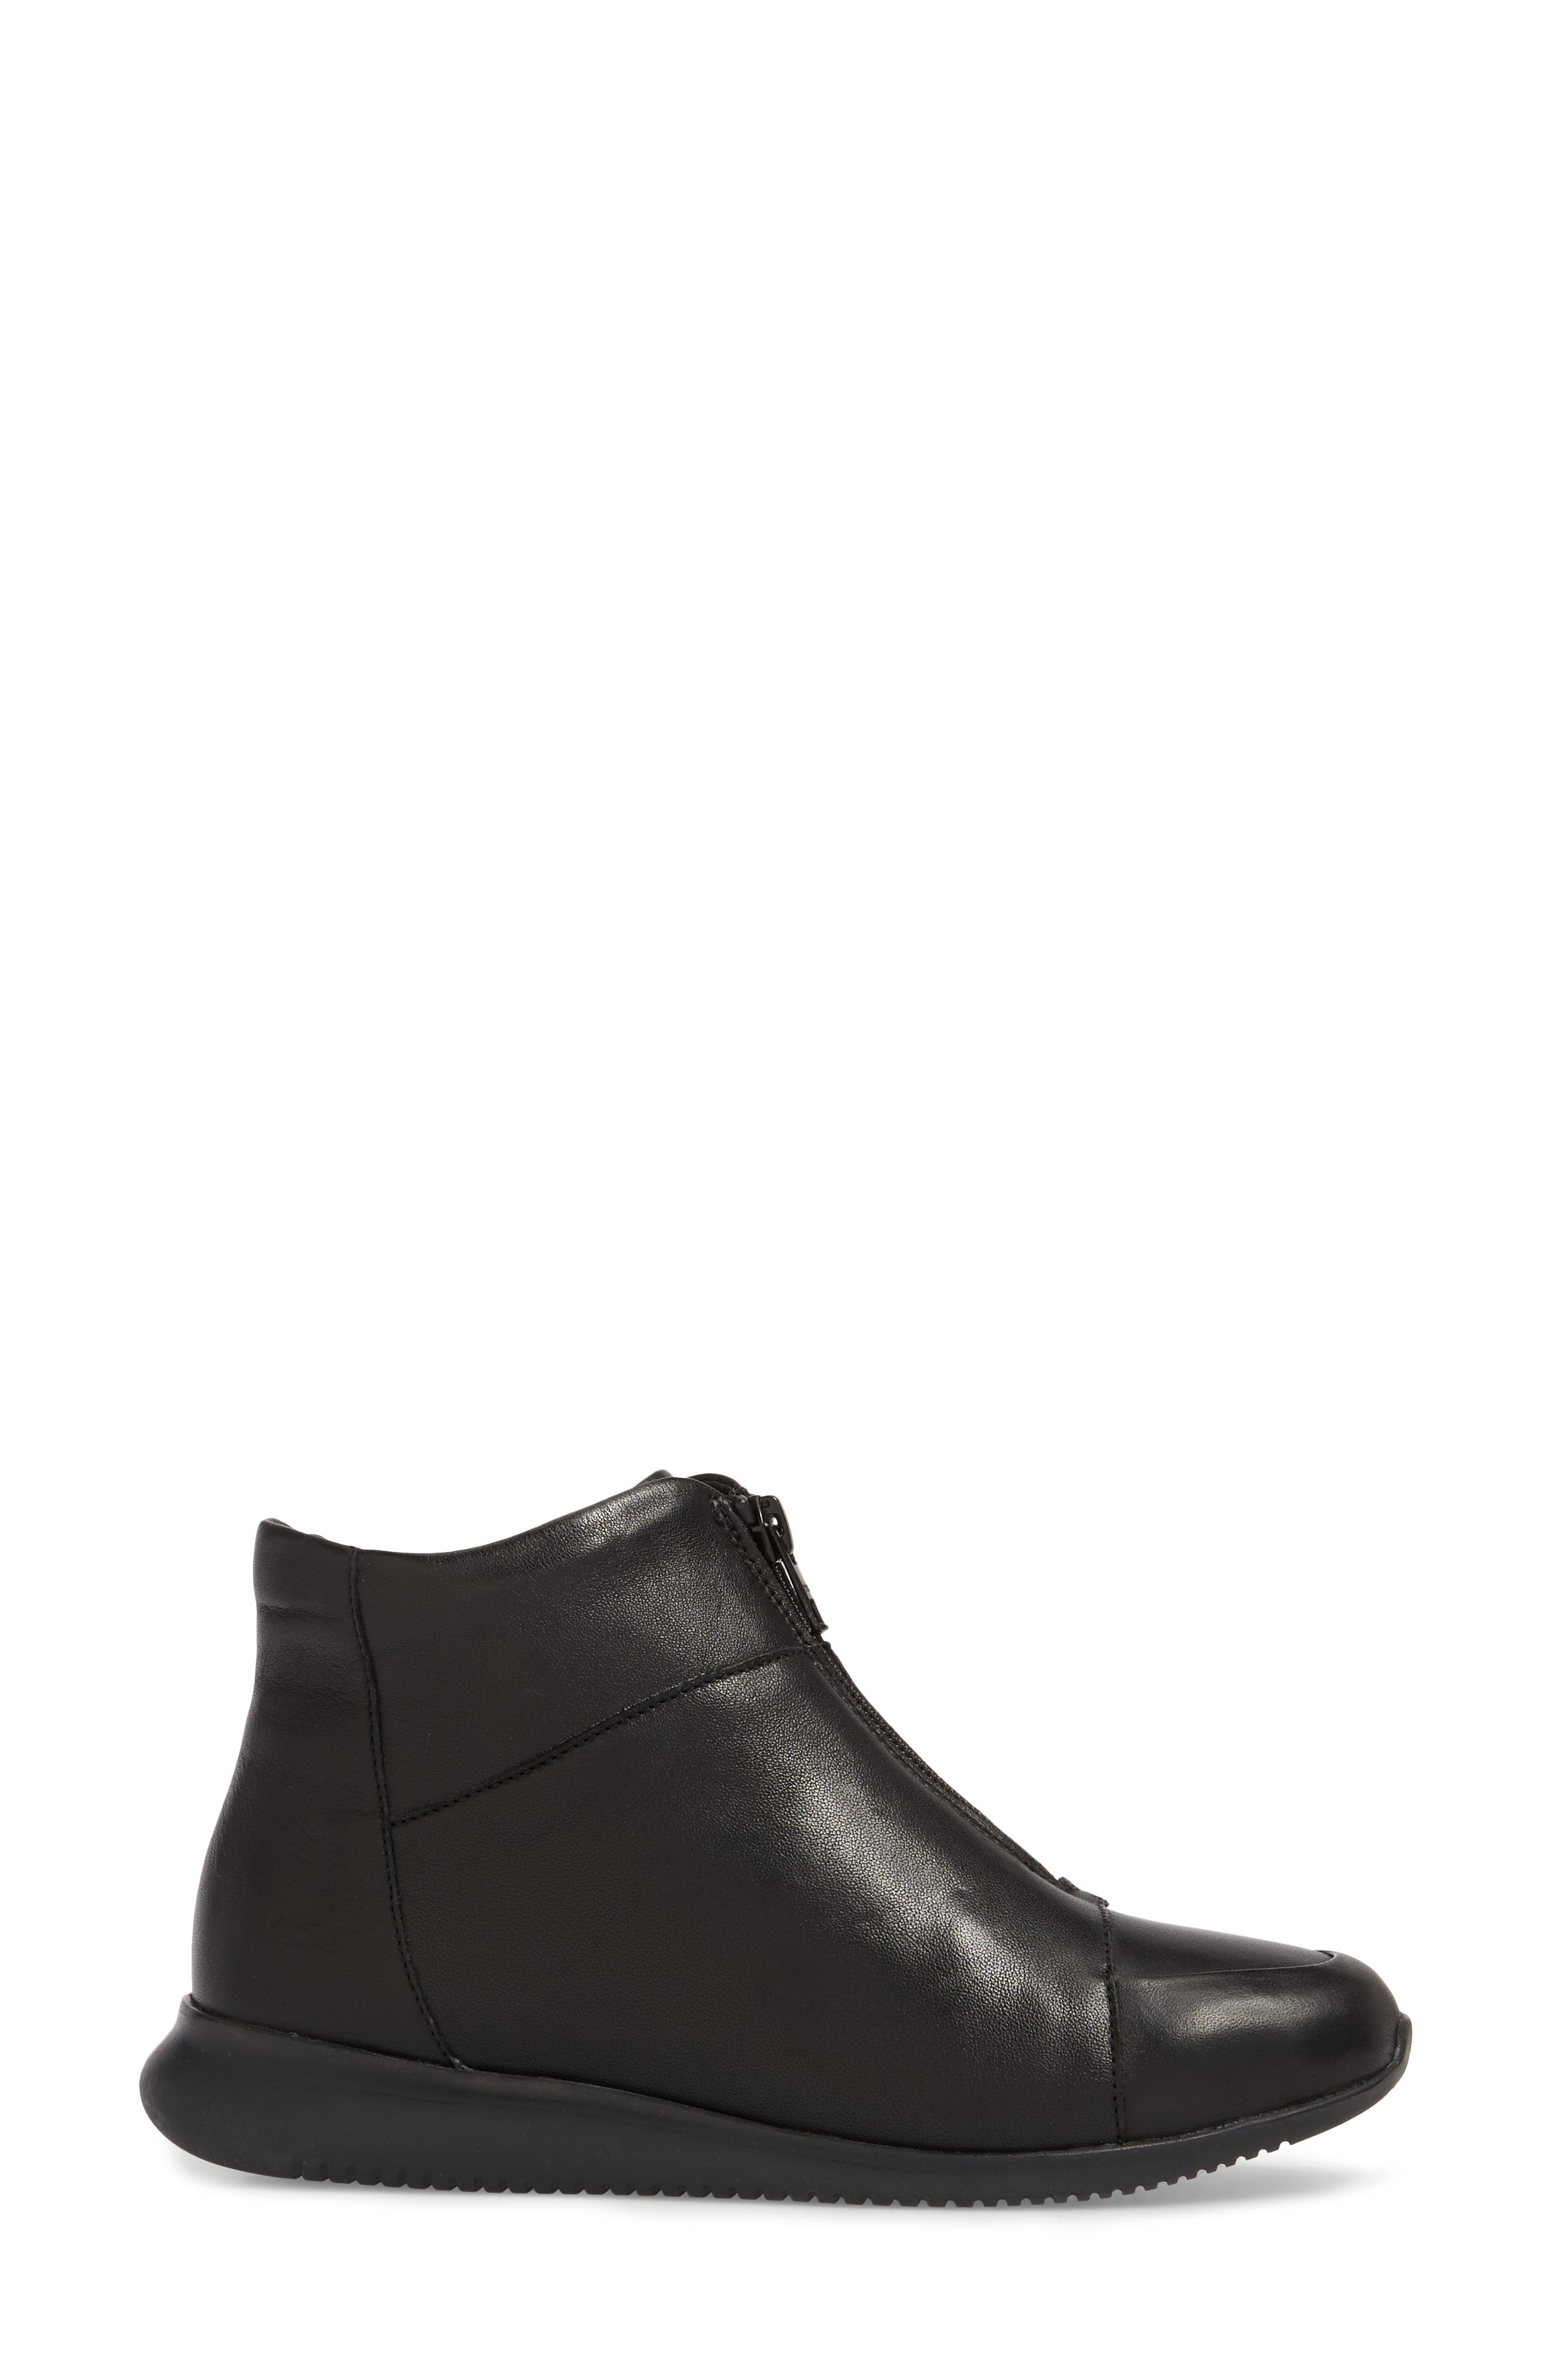 Roy Wool Lined Cap Toe Bootie,                             Alternate thumbnail 3, color,                             BLACK LEATHER